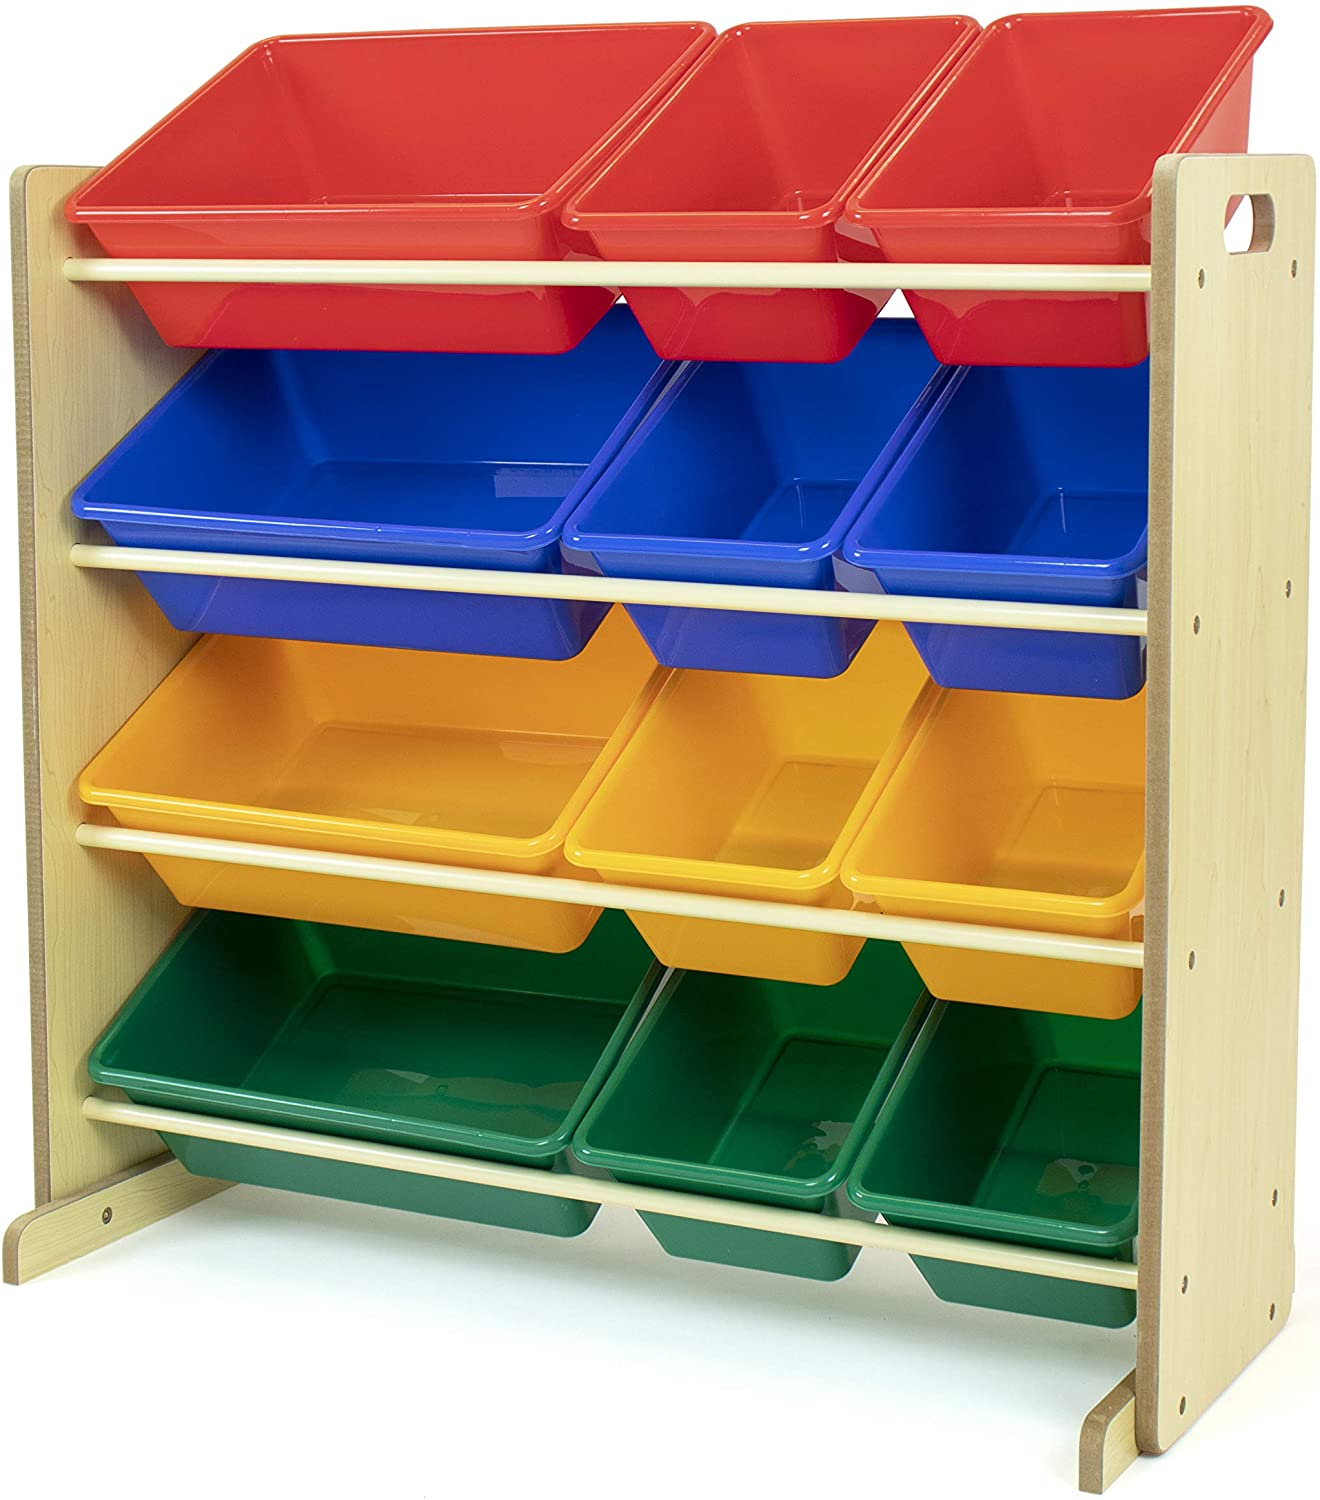 Top 9 Best Toy Storage Organizer (2020 Reviews & Guide) 2